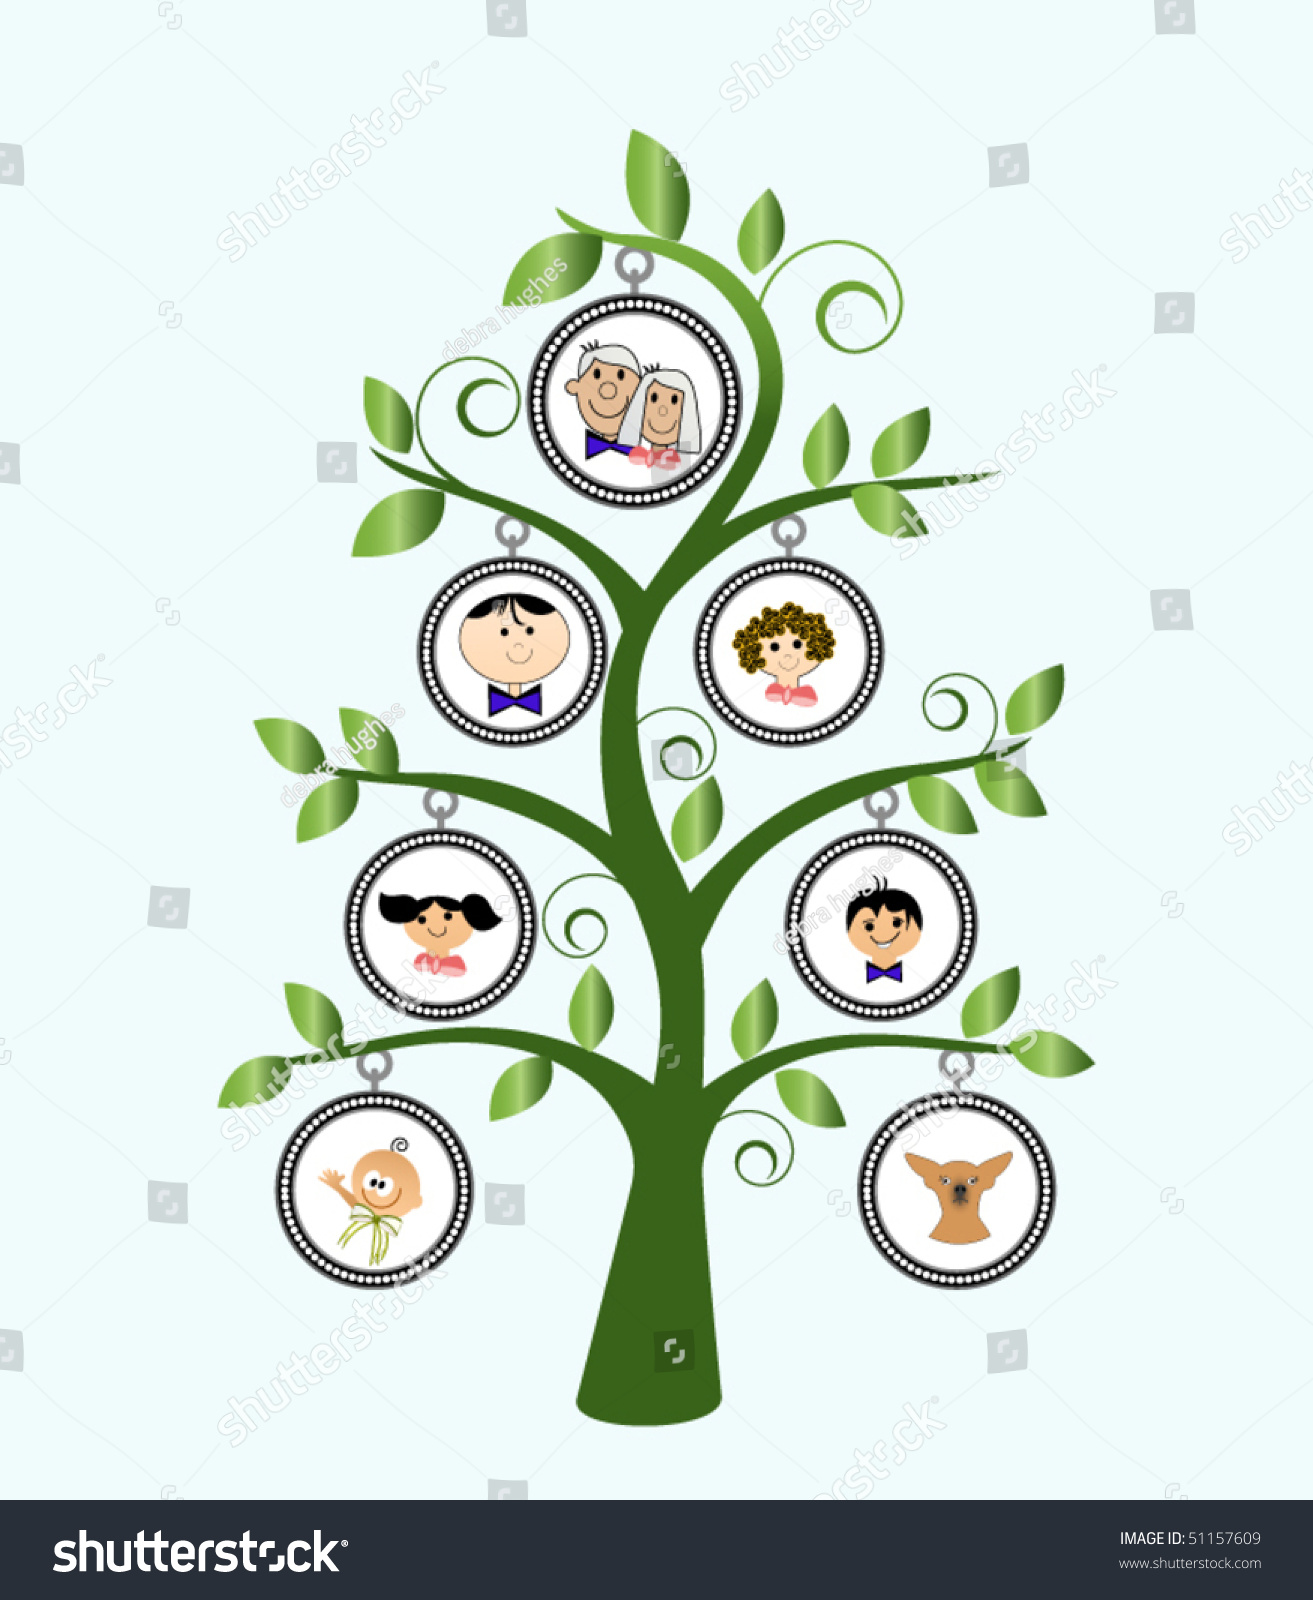 Family Tree Cartoon Family Stock Vector